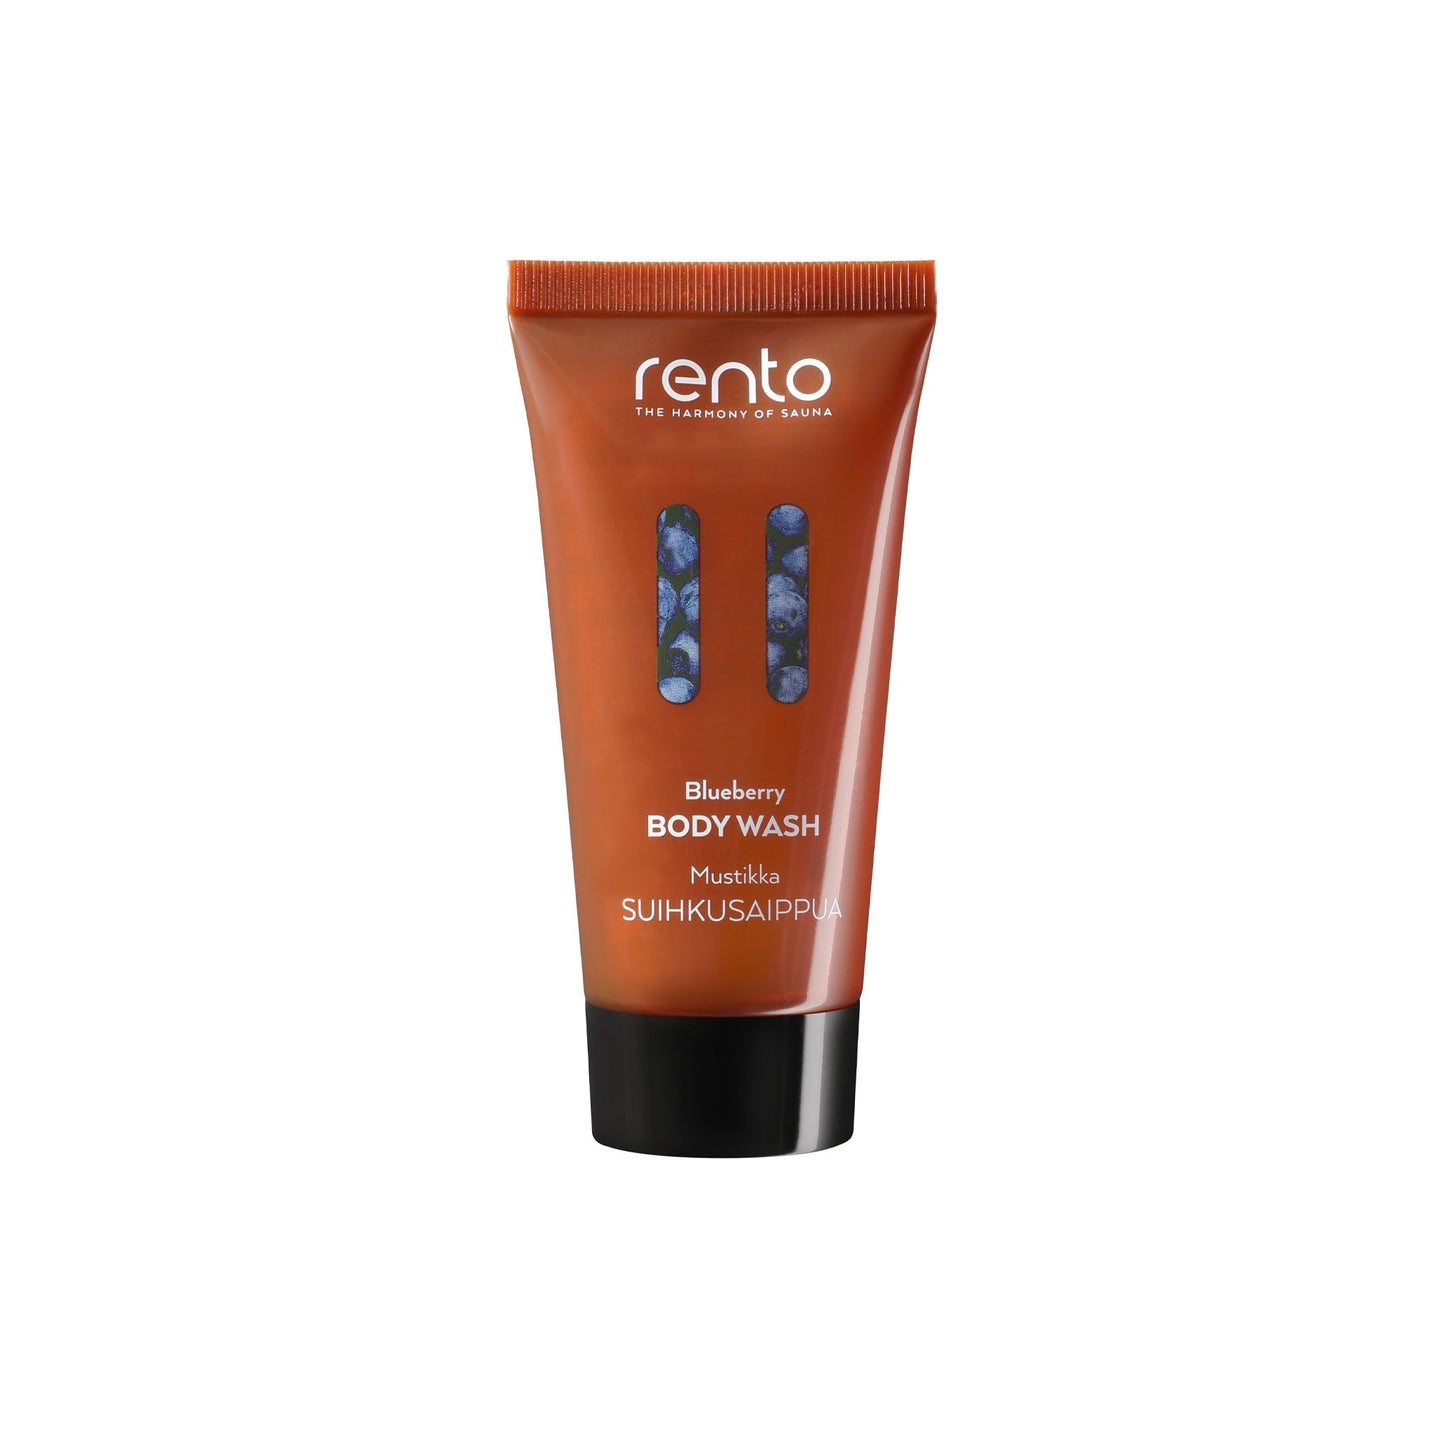 Rento Blueberry Travel Body Wash 50 ml Default Title body wash Finnmark Sauna